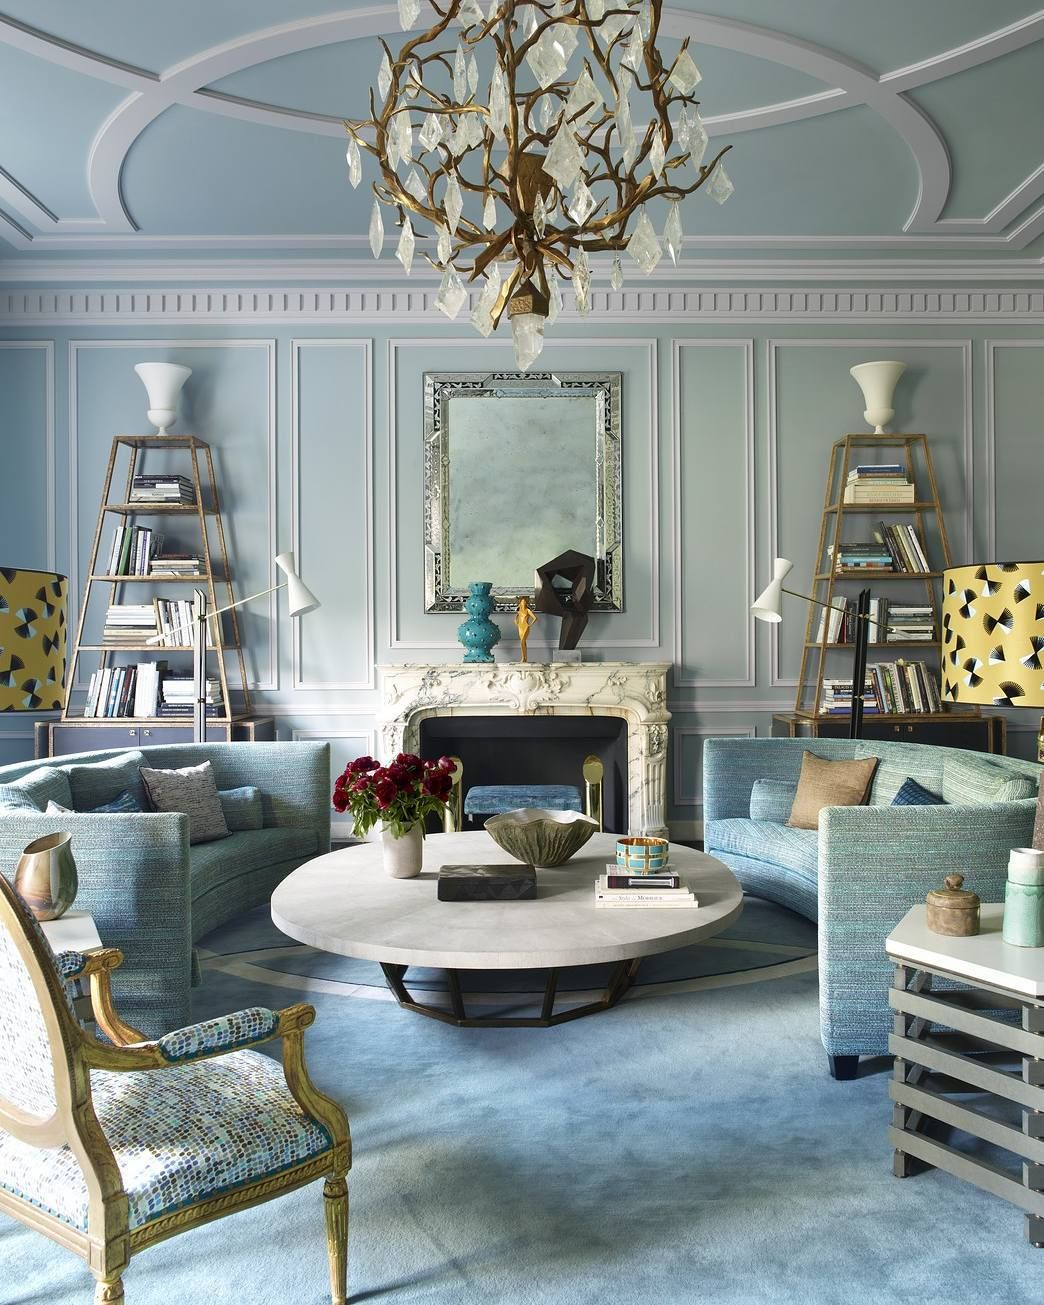 Luxury Ideas For Lavish Living Room Style: Pin By Reena Pasricha On Blue Rooms In 2019